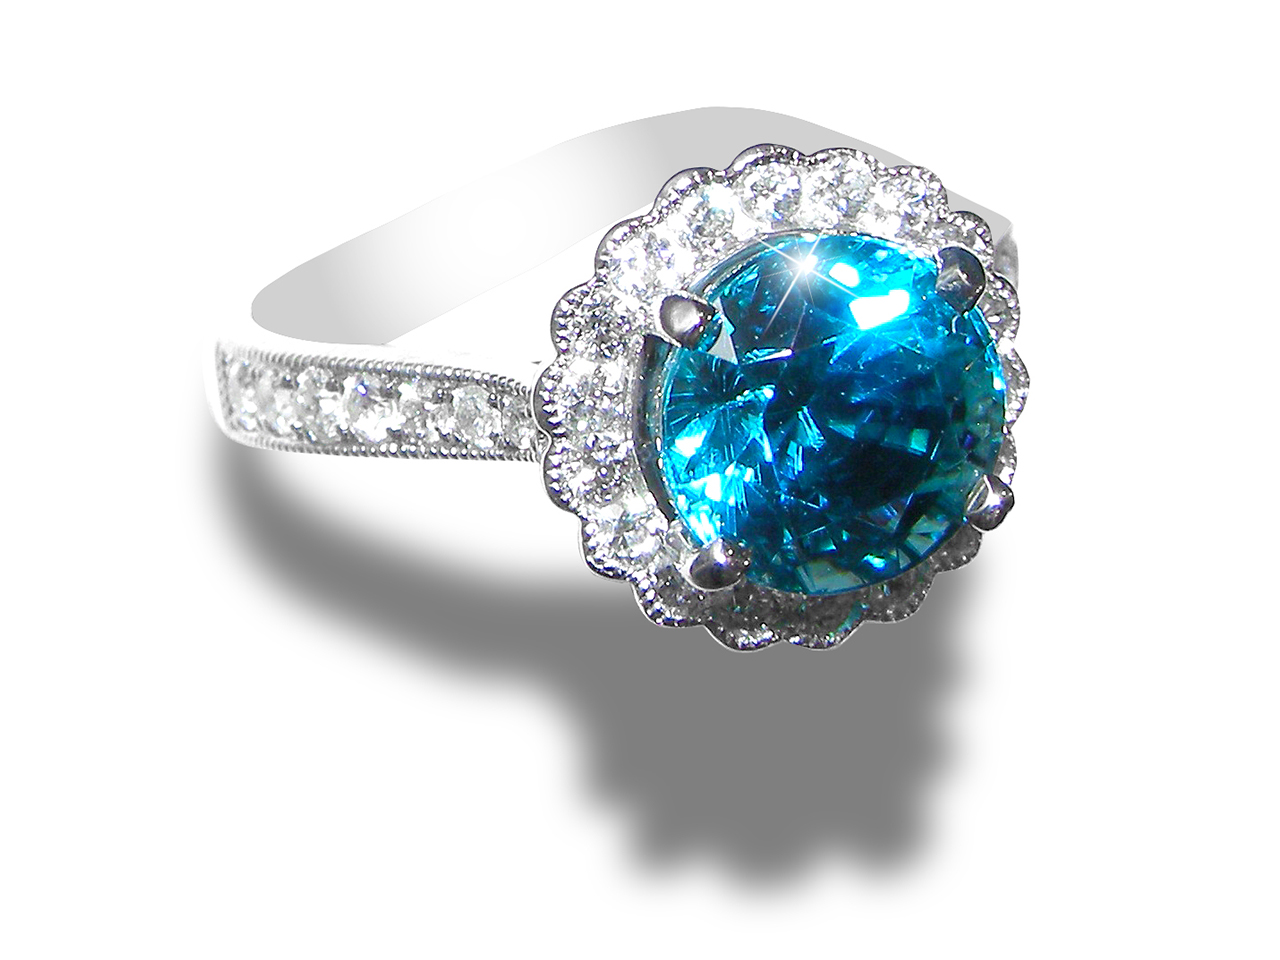 Ideal Faceted Blue Zircon Diamond Ring 18KWG 4.21 ctw